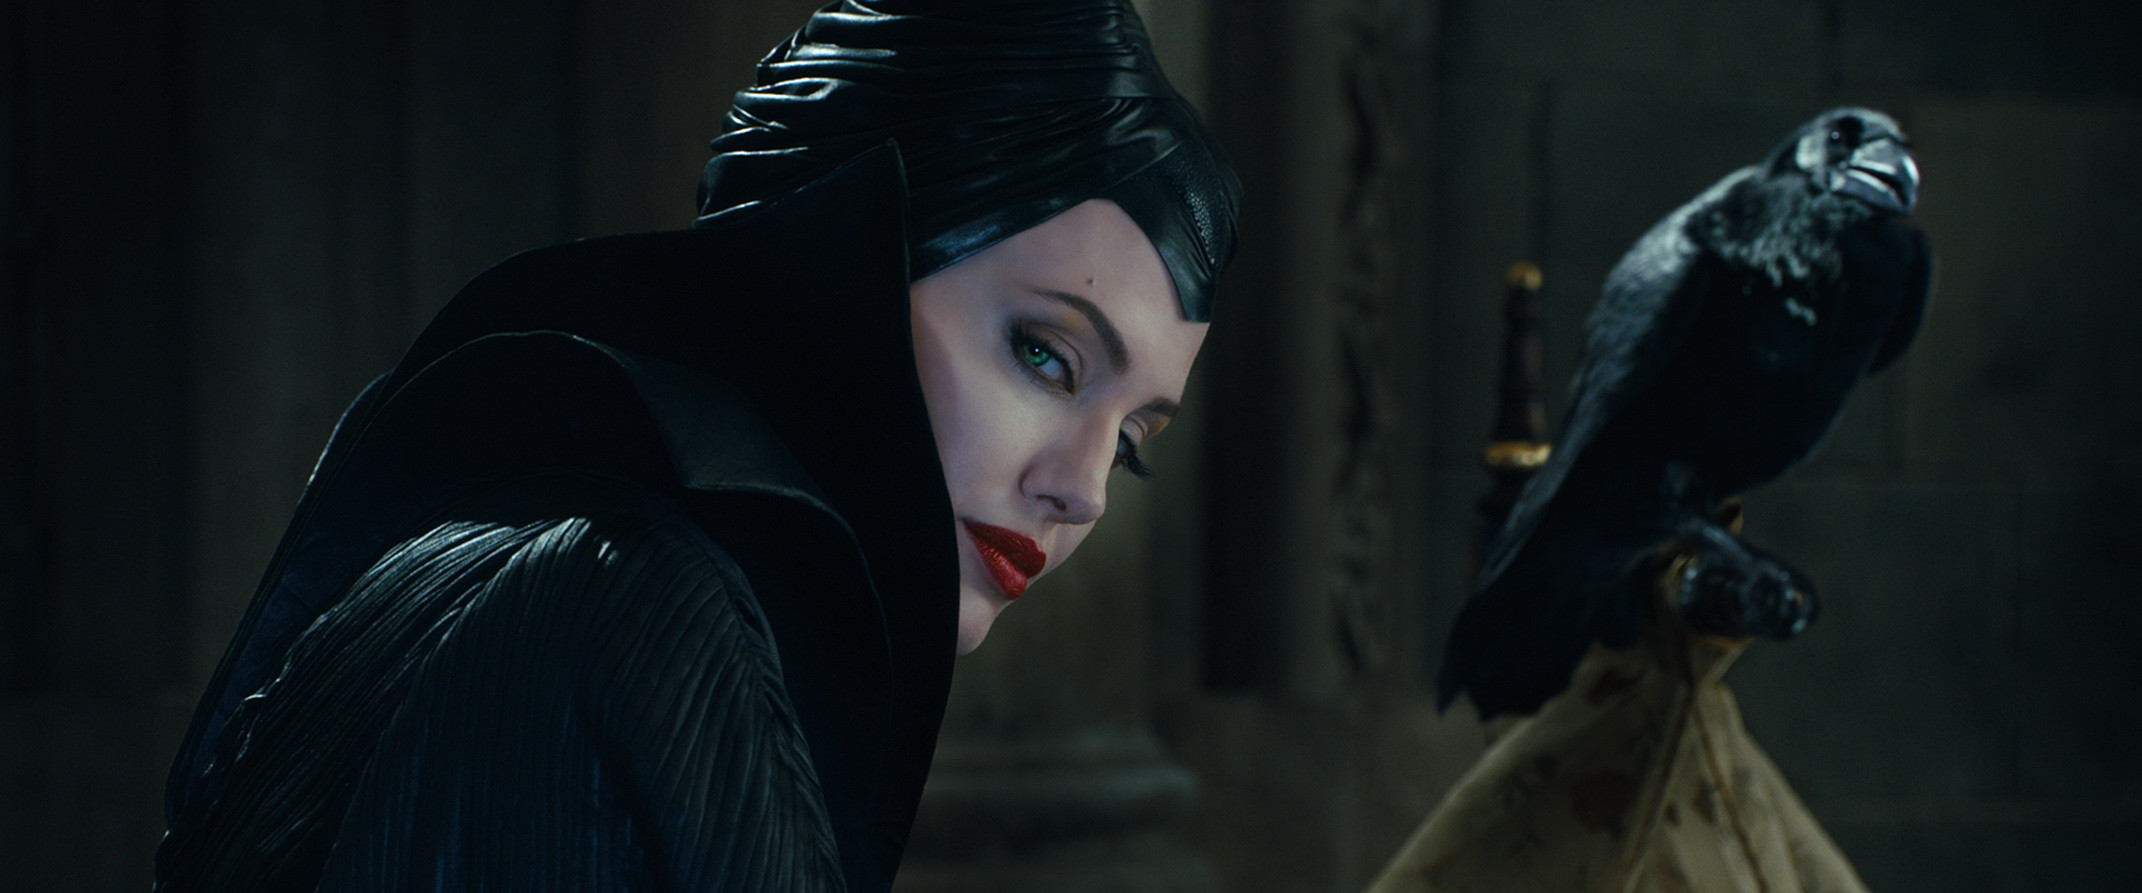 14-new-stills-from-disney-s-maleficent